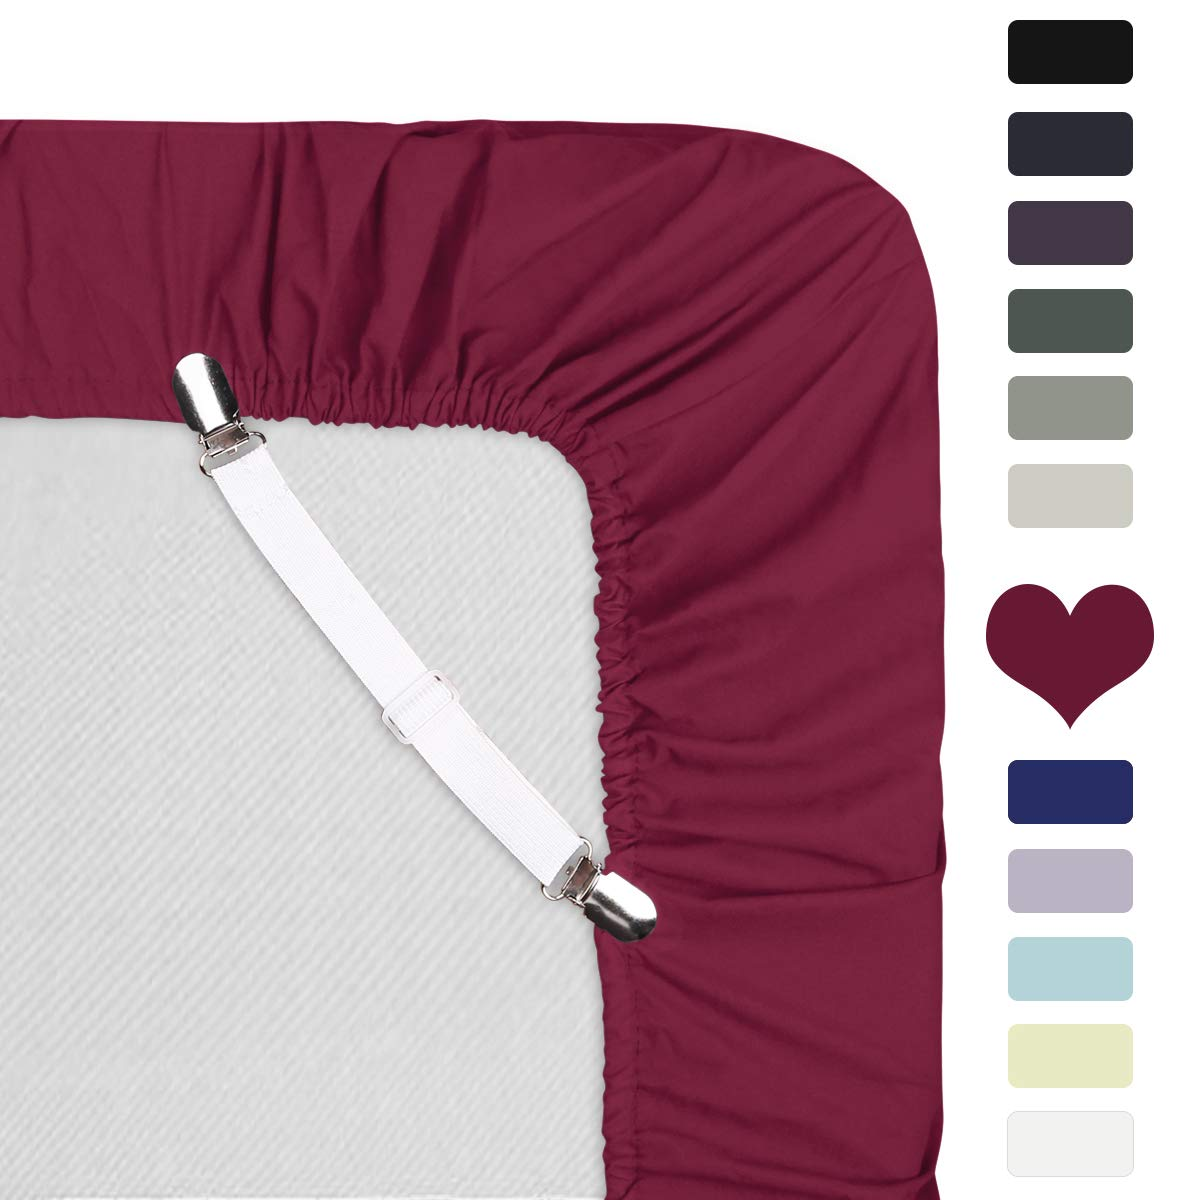 HOMEIDEAS Luxury Fitted Sheet - Double Brushed Microfiber - 16'' Deep Pocket - 105 GSM Ultra Soft, Hypoallergenic 1800 Bedding - Wrinkle & Stain Free(Queen, Burgundy)